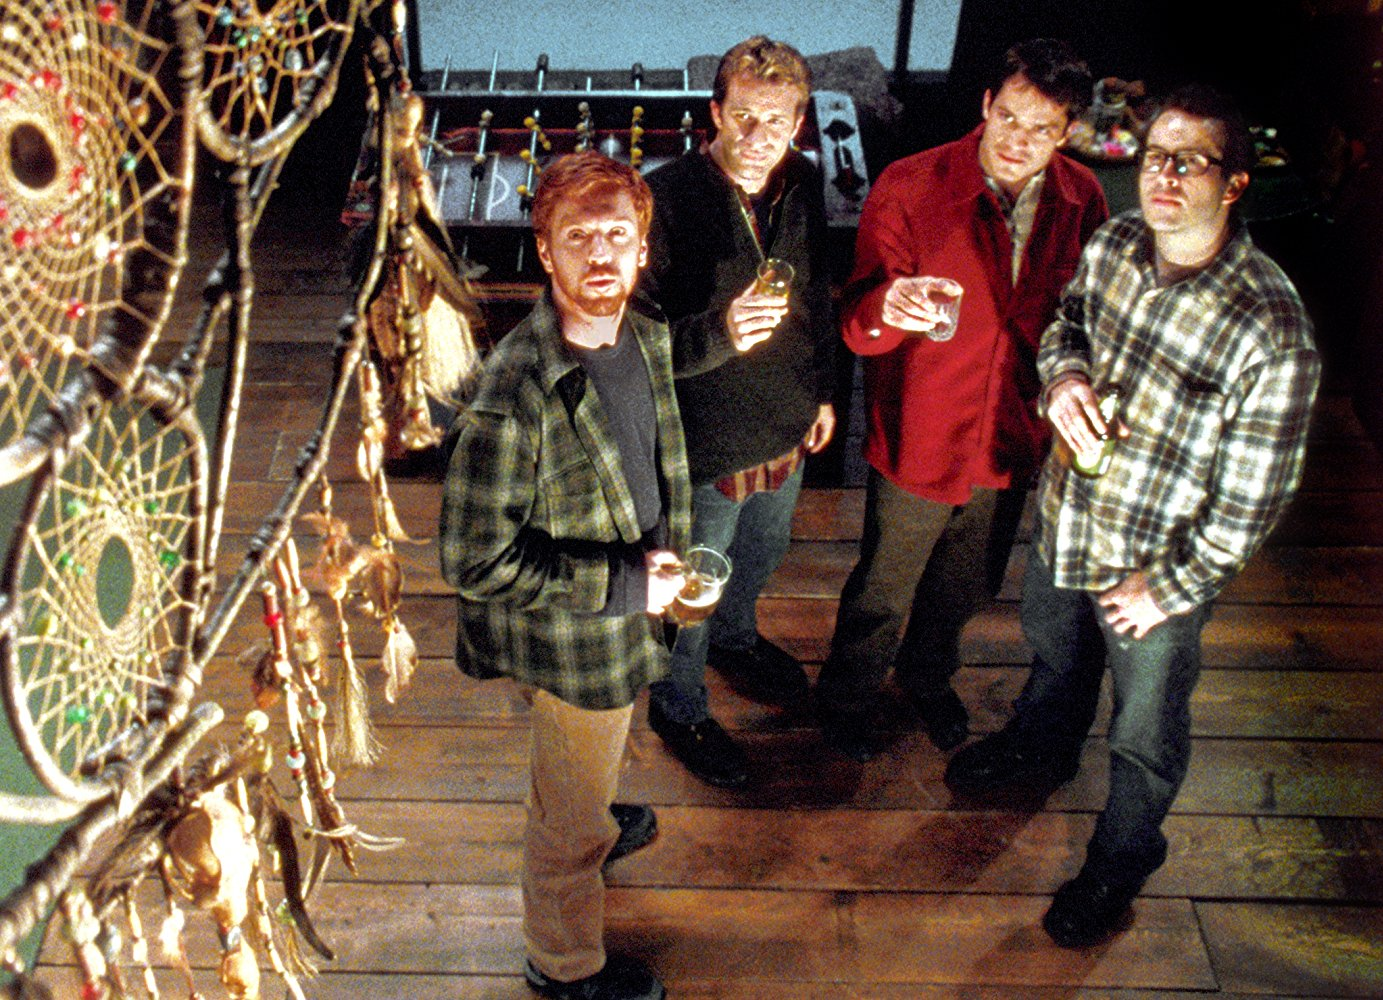 Four friends on a get-together at a cabin in the woods - Damian Lewis, Thomas Jane, Timothy Olyphant, Jason Lee in Dreamcatcher (2003)